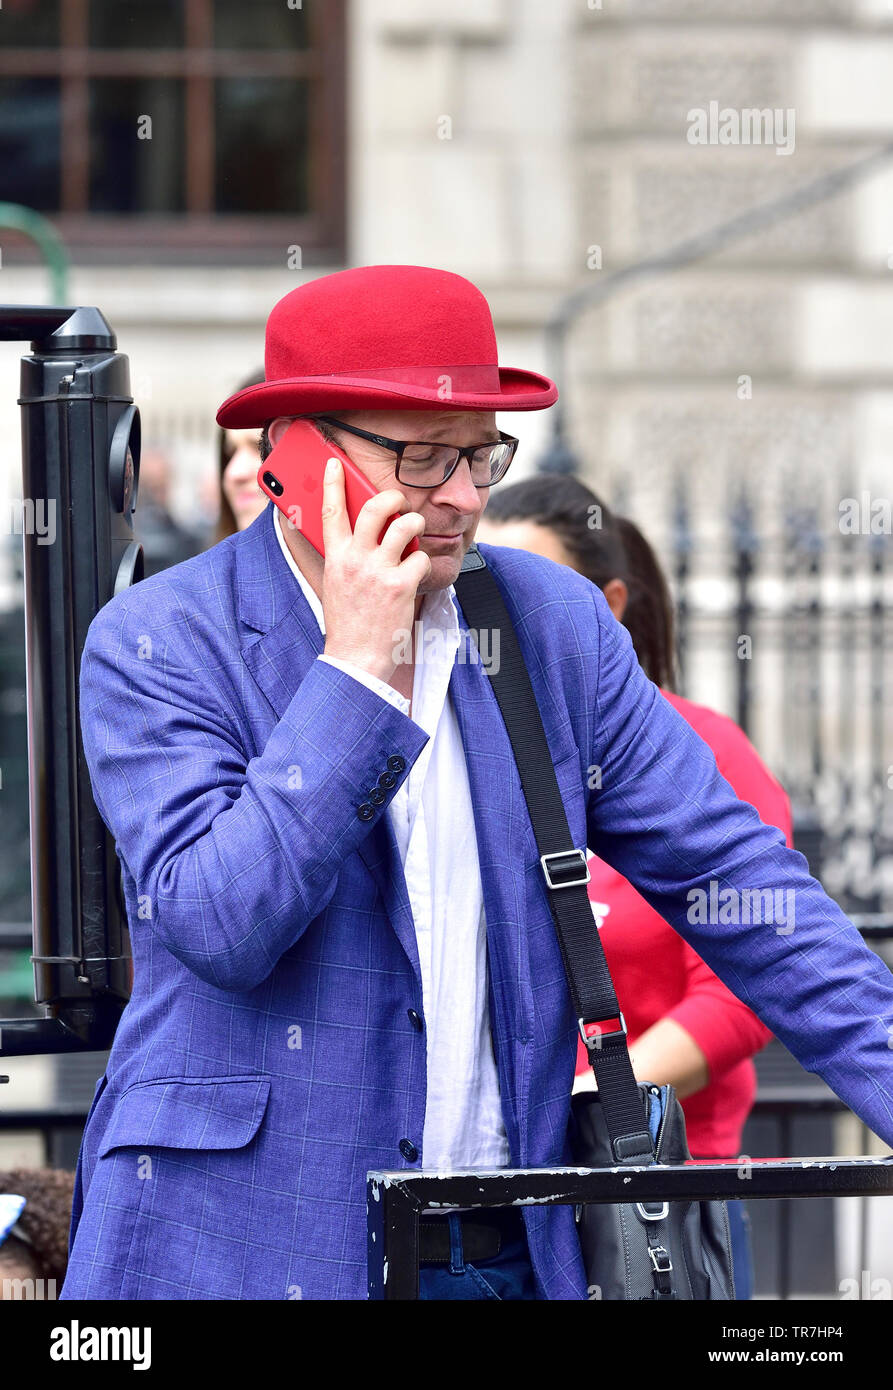 London, England, UK. Man in a red bowler hat using a red mobile phone in Whitehall - Stock Image